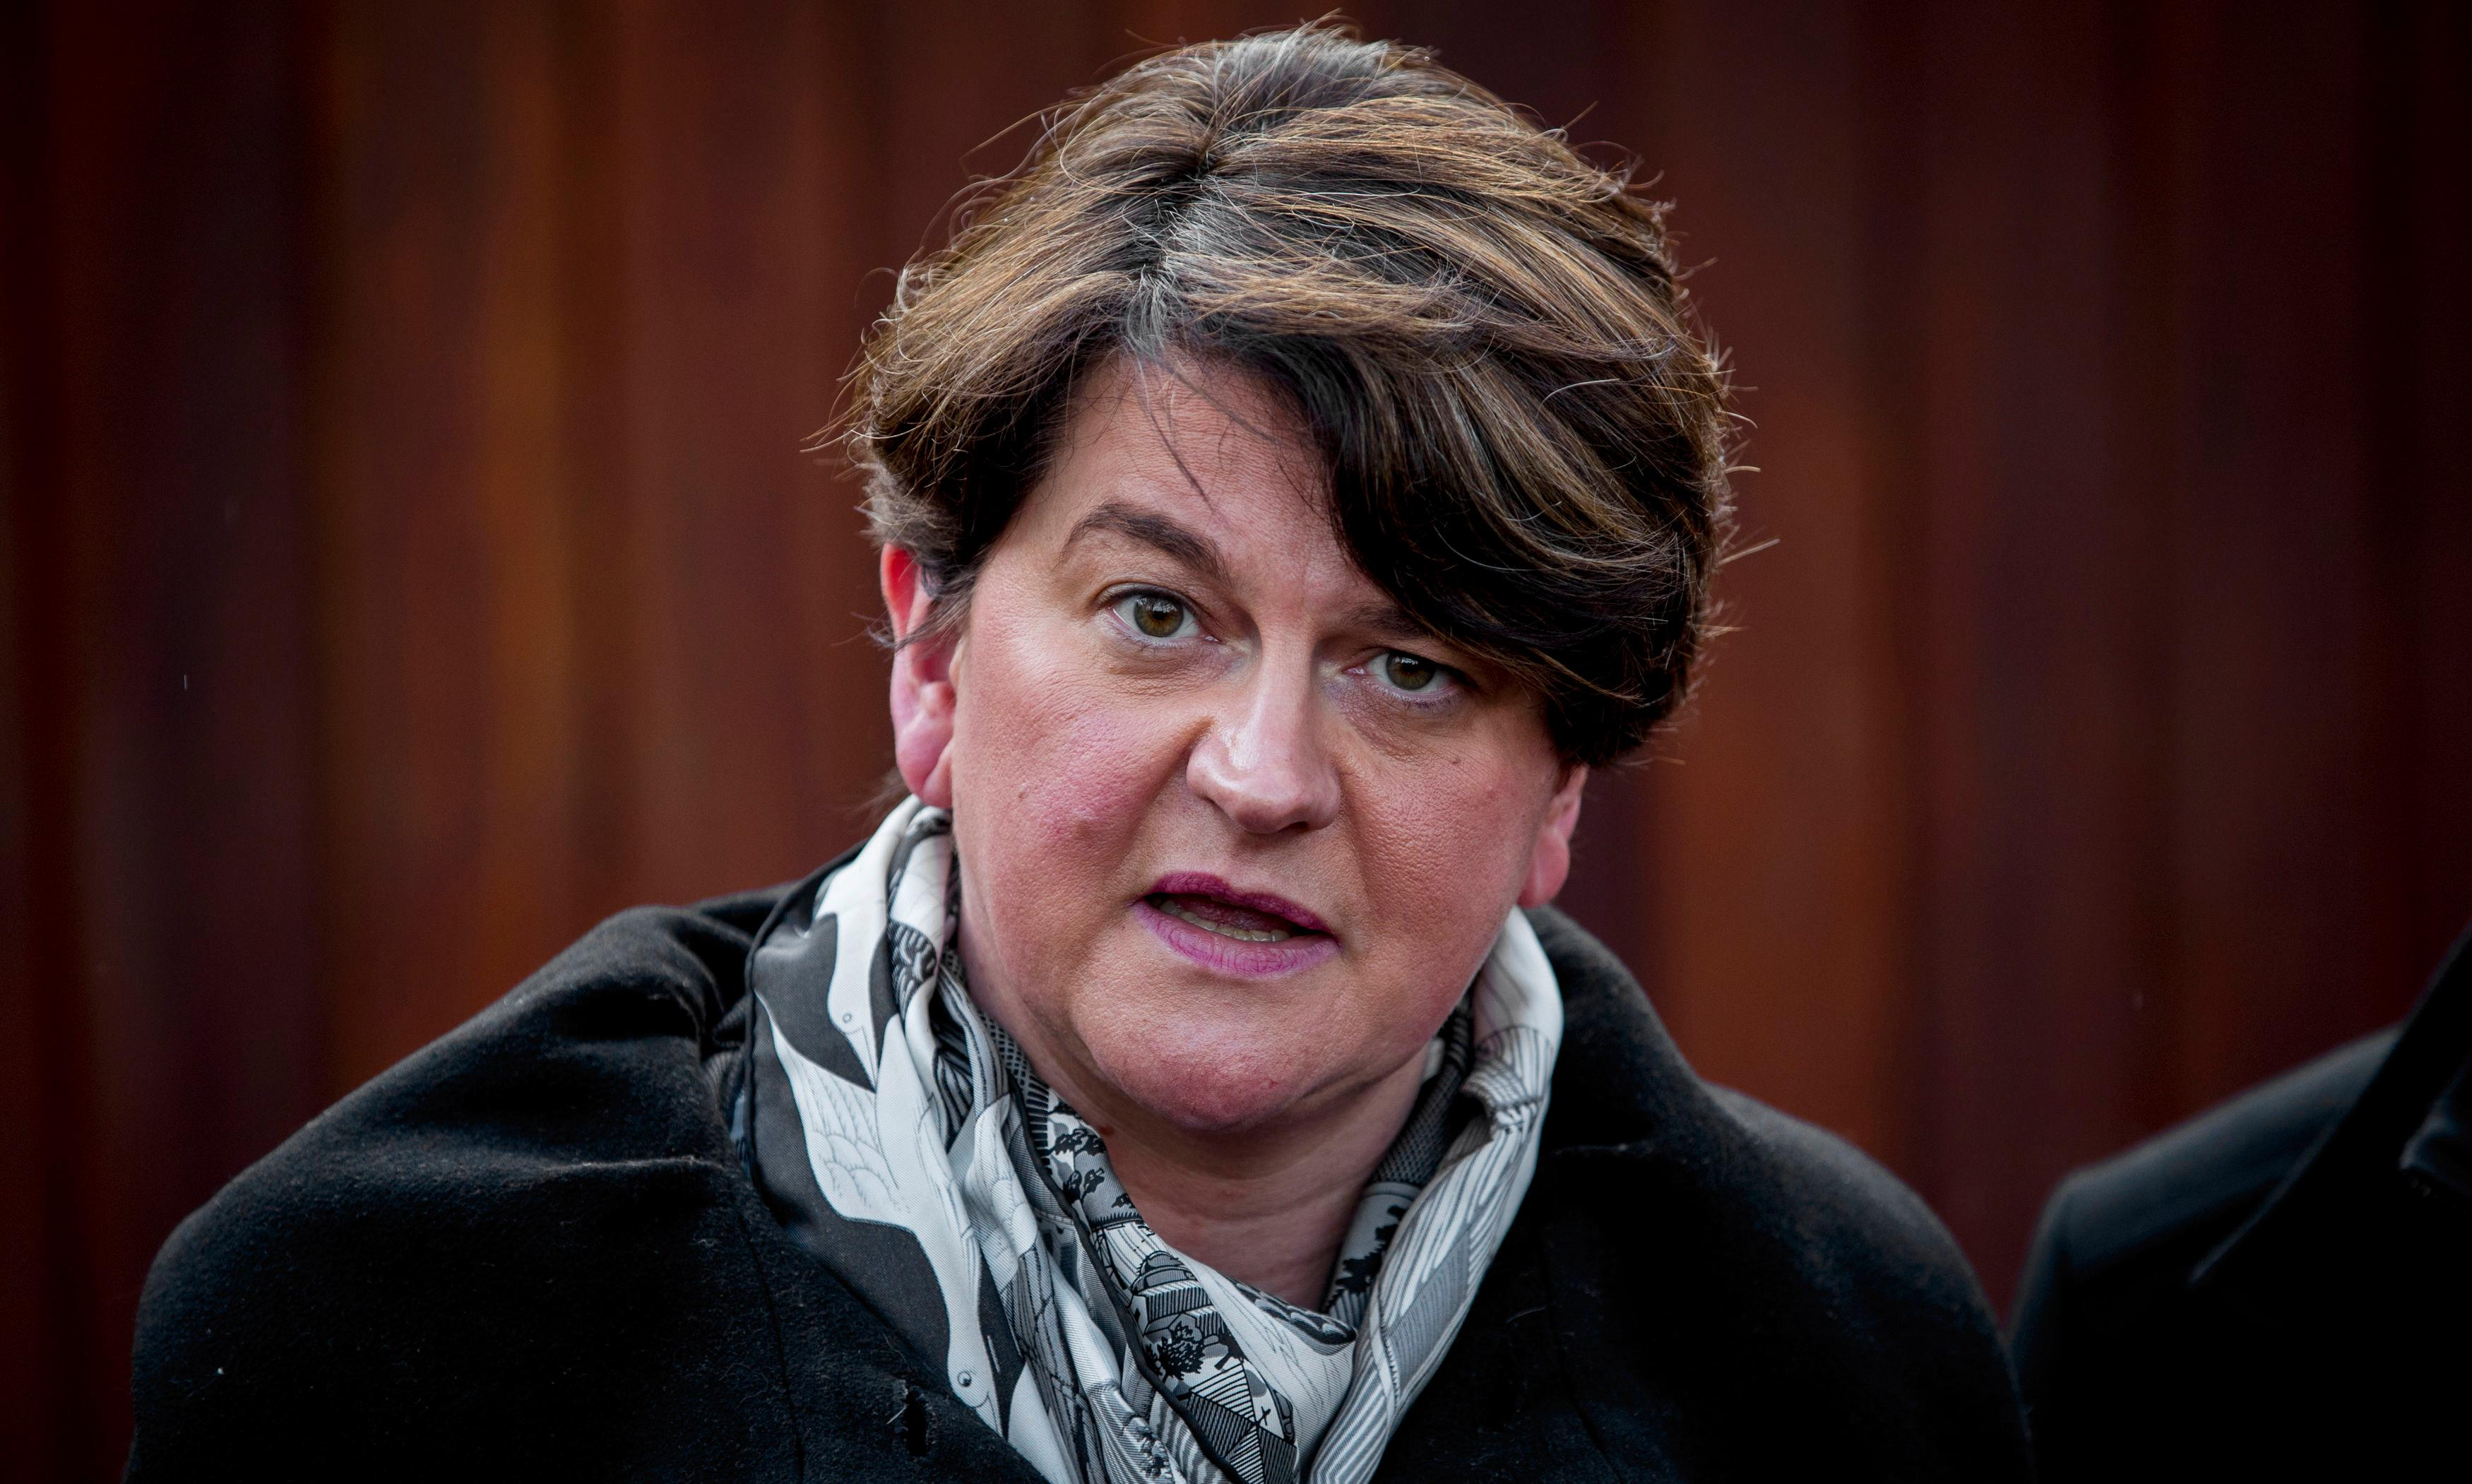 Where is the DUP's £1bn 'bung'? Our schools and hospitals are broke